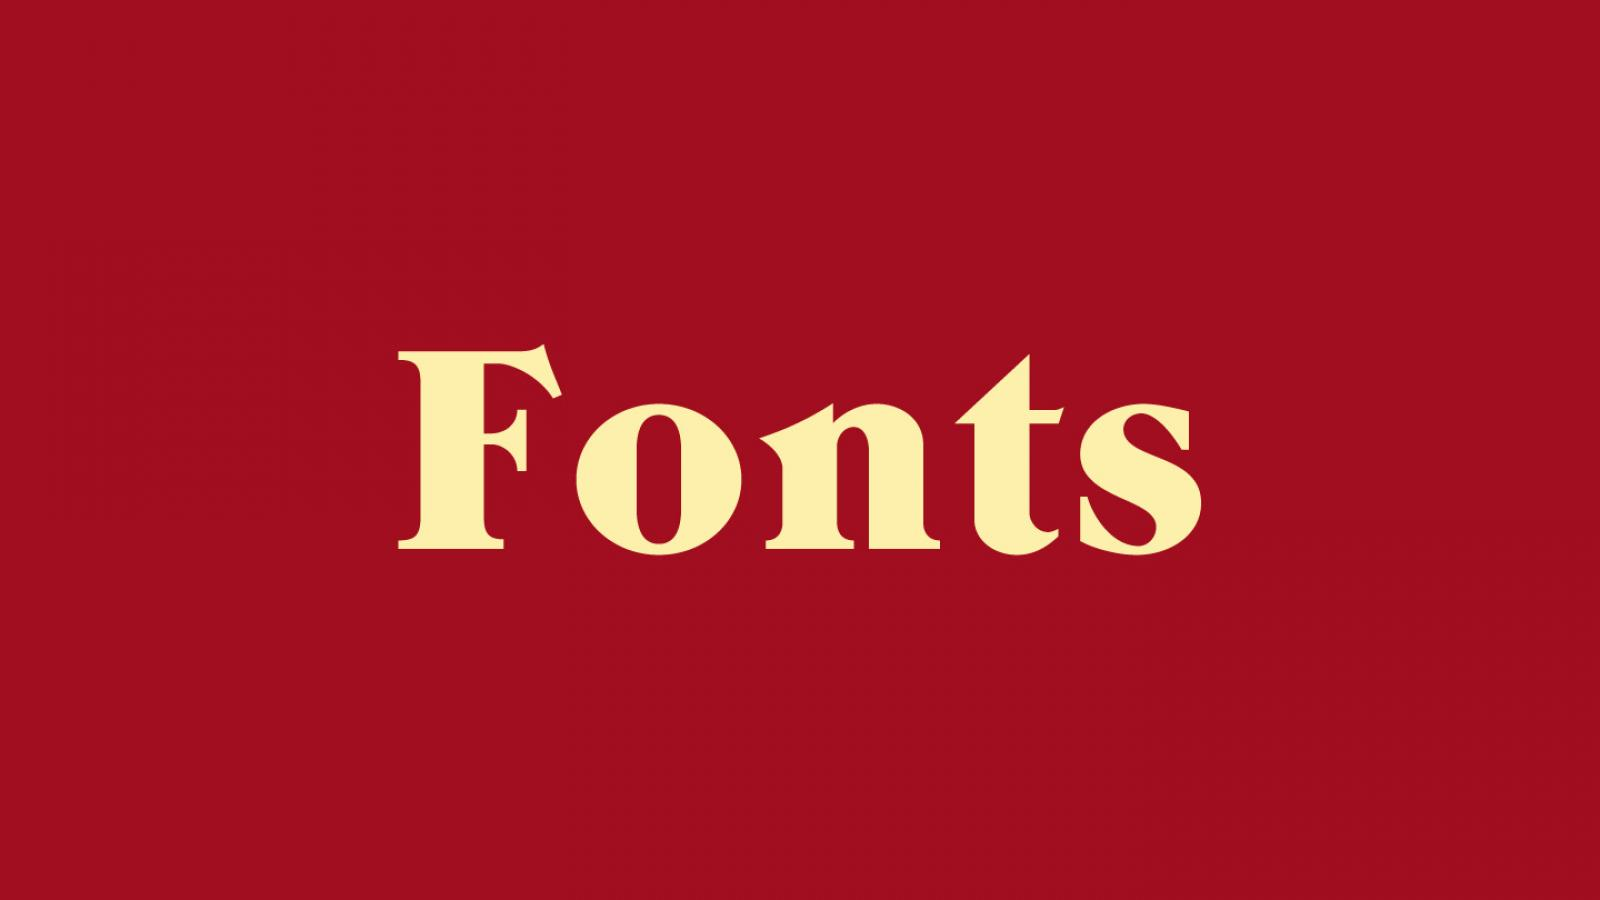 Friday Fresh Free Fonts - Magra, Grandee, Slabo